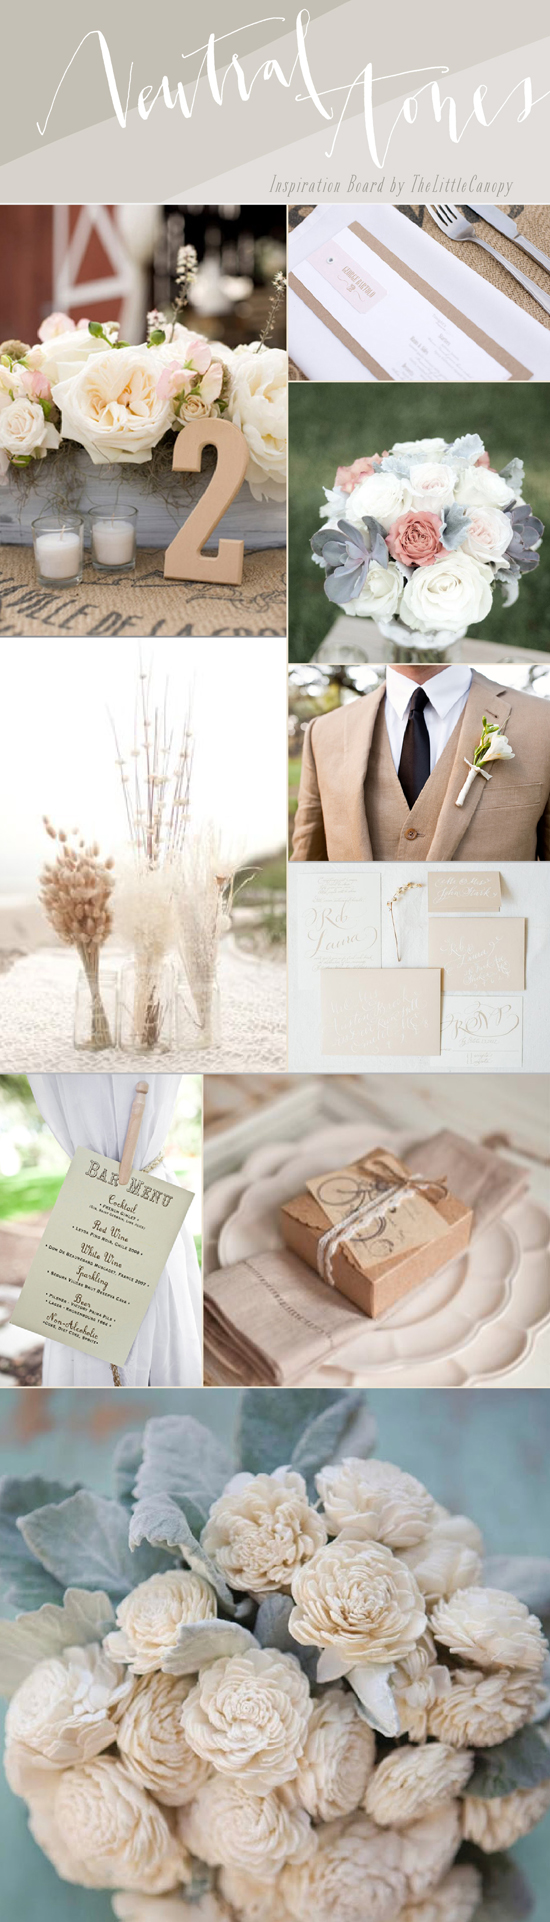 Looking for a natural theme that isn't just all one nude color? Don't be afraid to mix it up with some neutral tones! Including some white, ivory, nude and grey tones will help create an aura of natural beauty and romance. If you want to add a pop color, try something bold like persimmon or emerald! Enjoy!